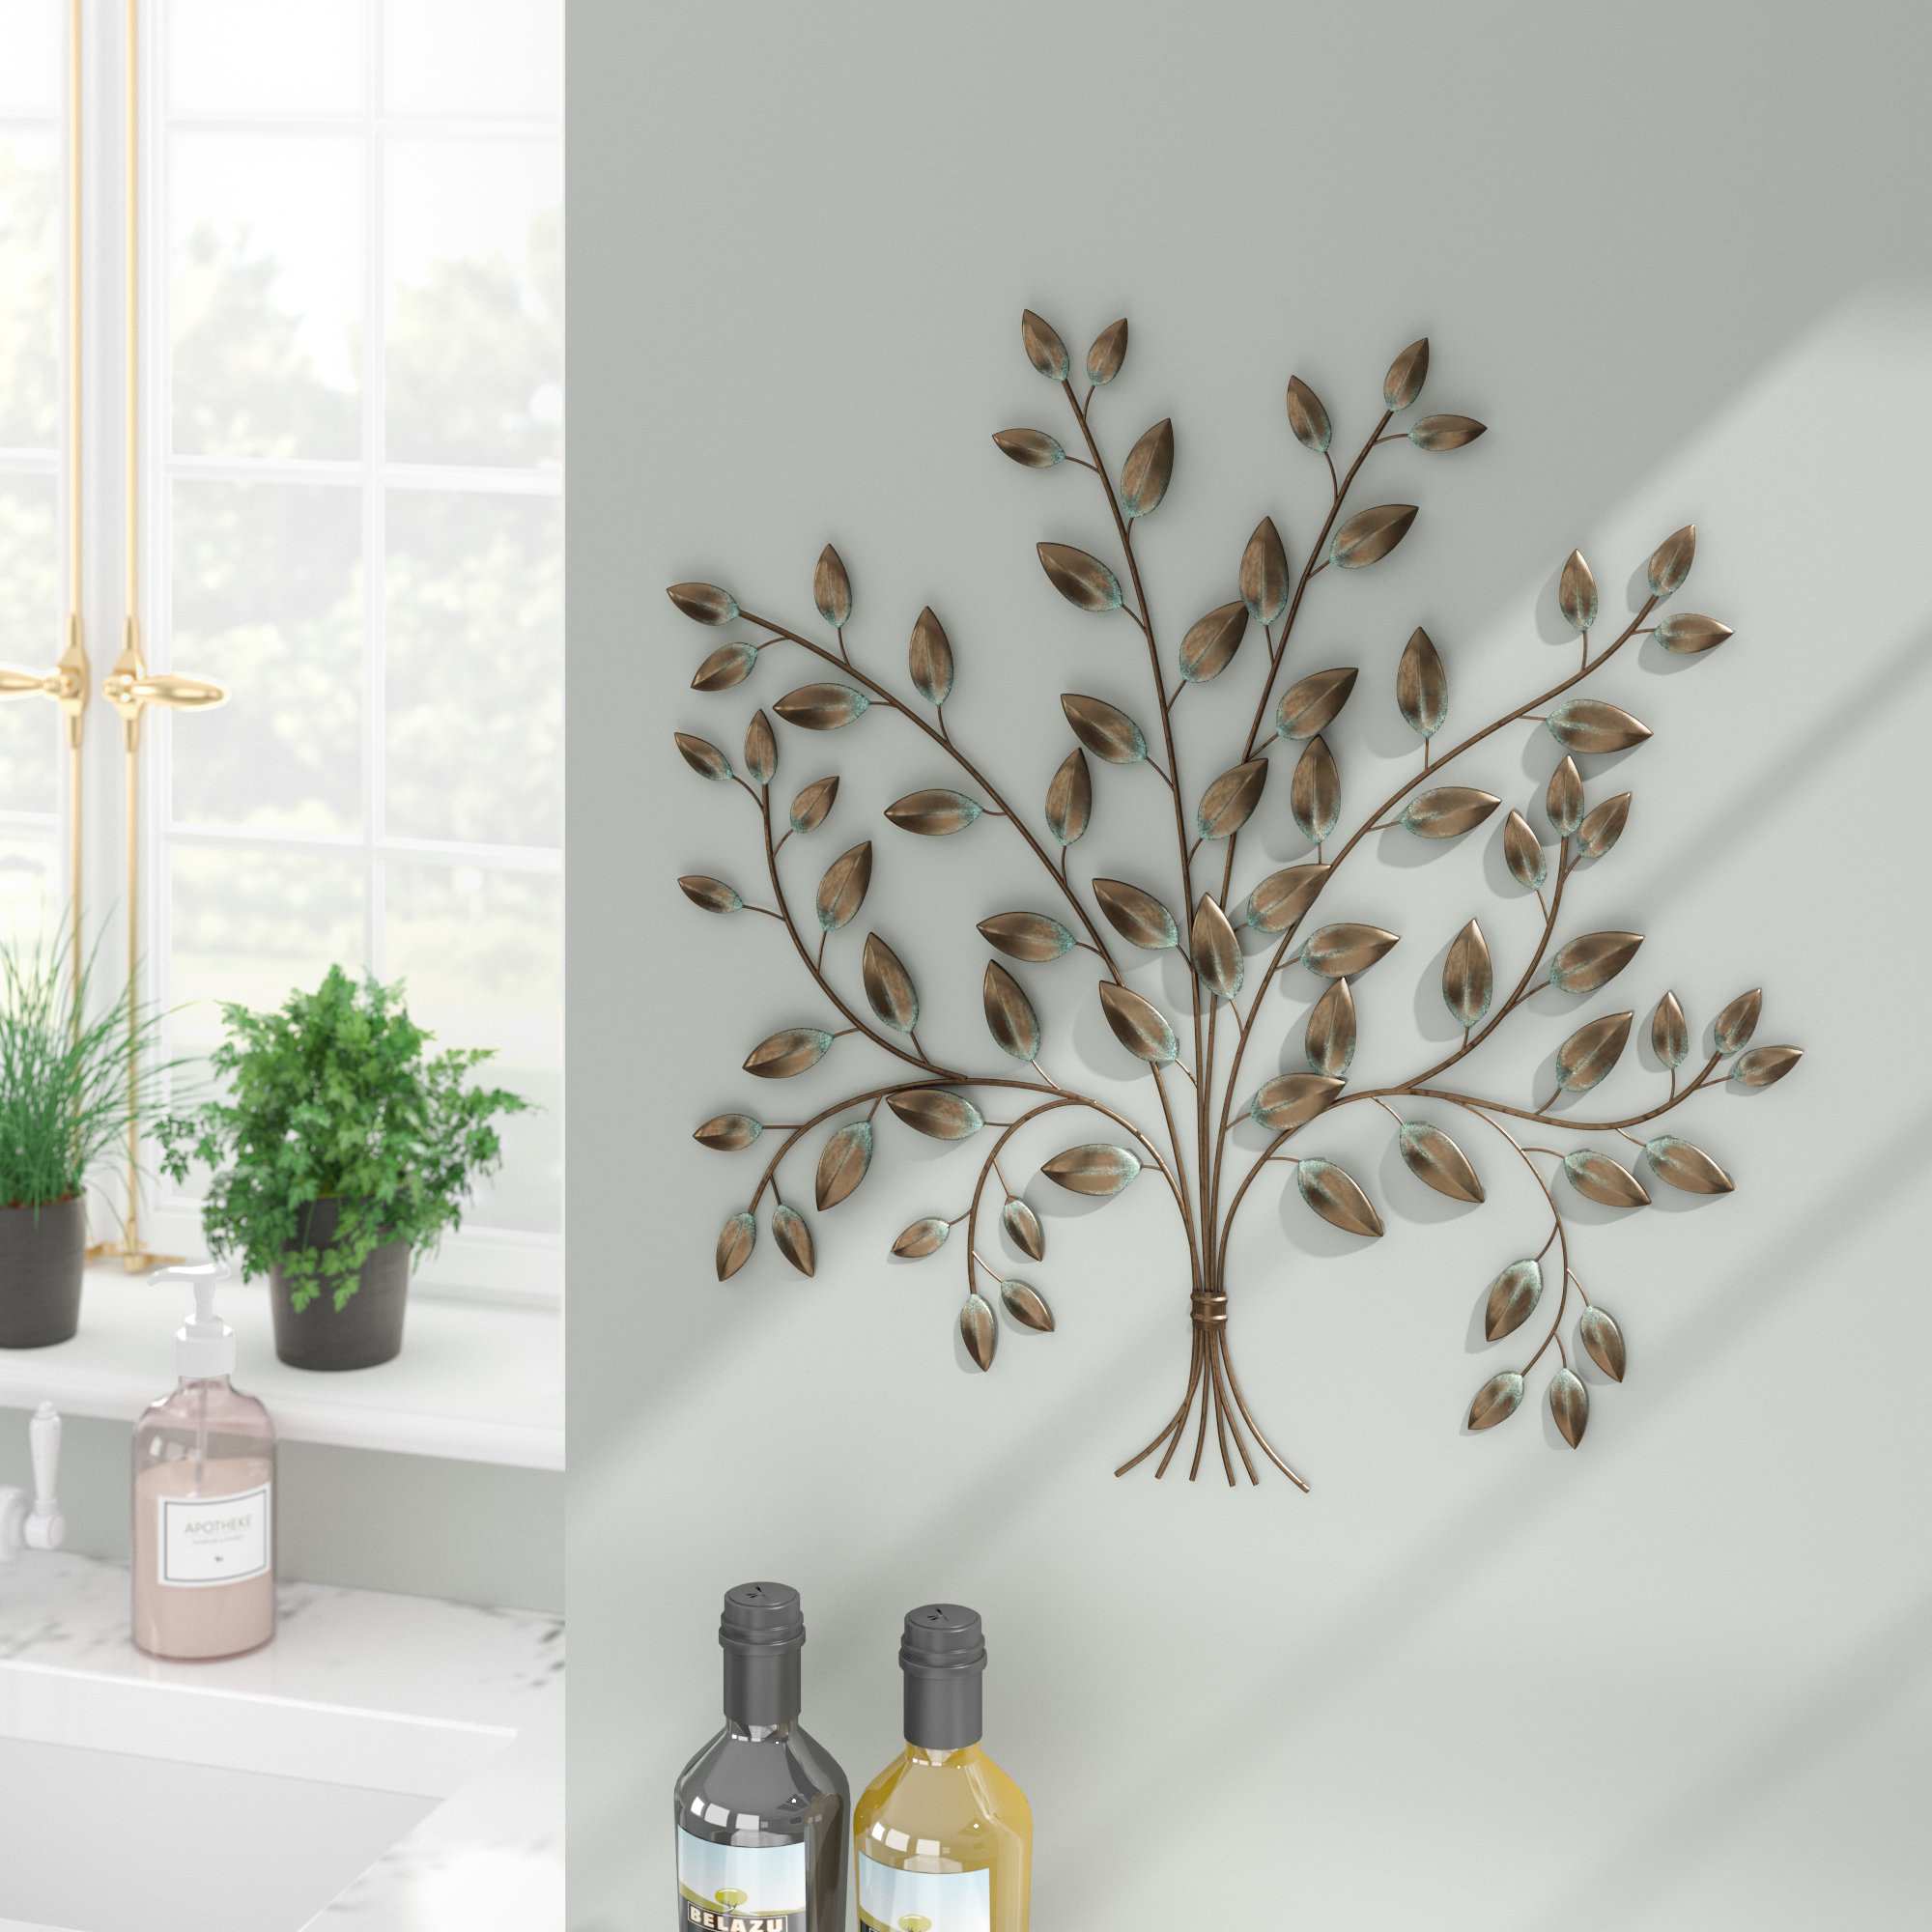 2019 Popular Windswept Tree Wall Decor With Windswept Tree Wall Decor (Photo 6 of 30)